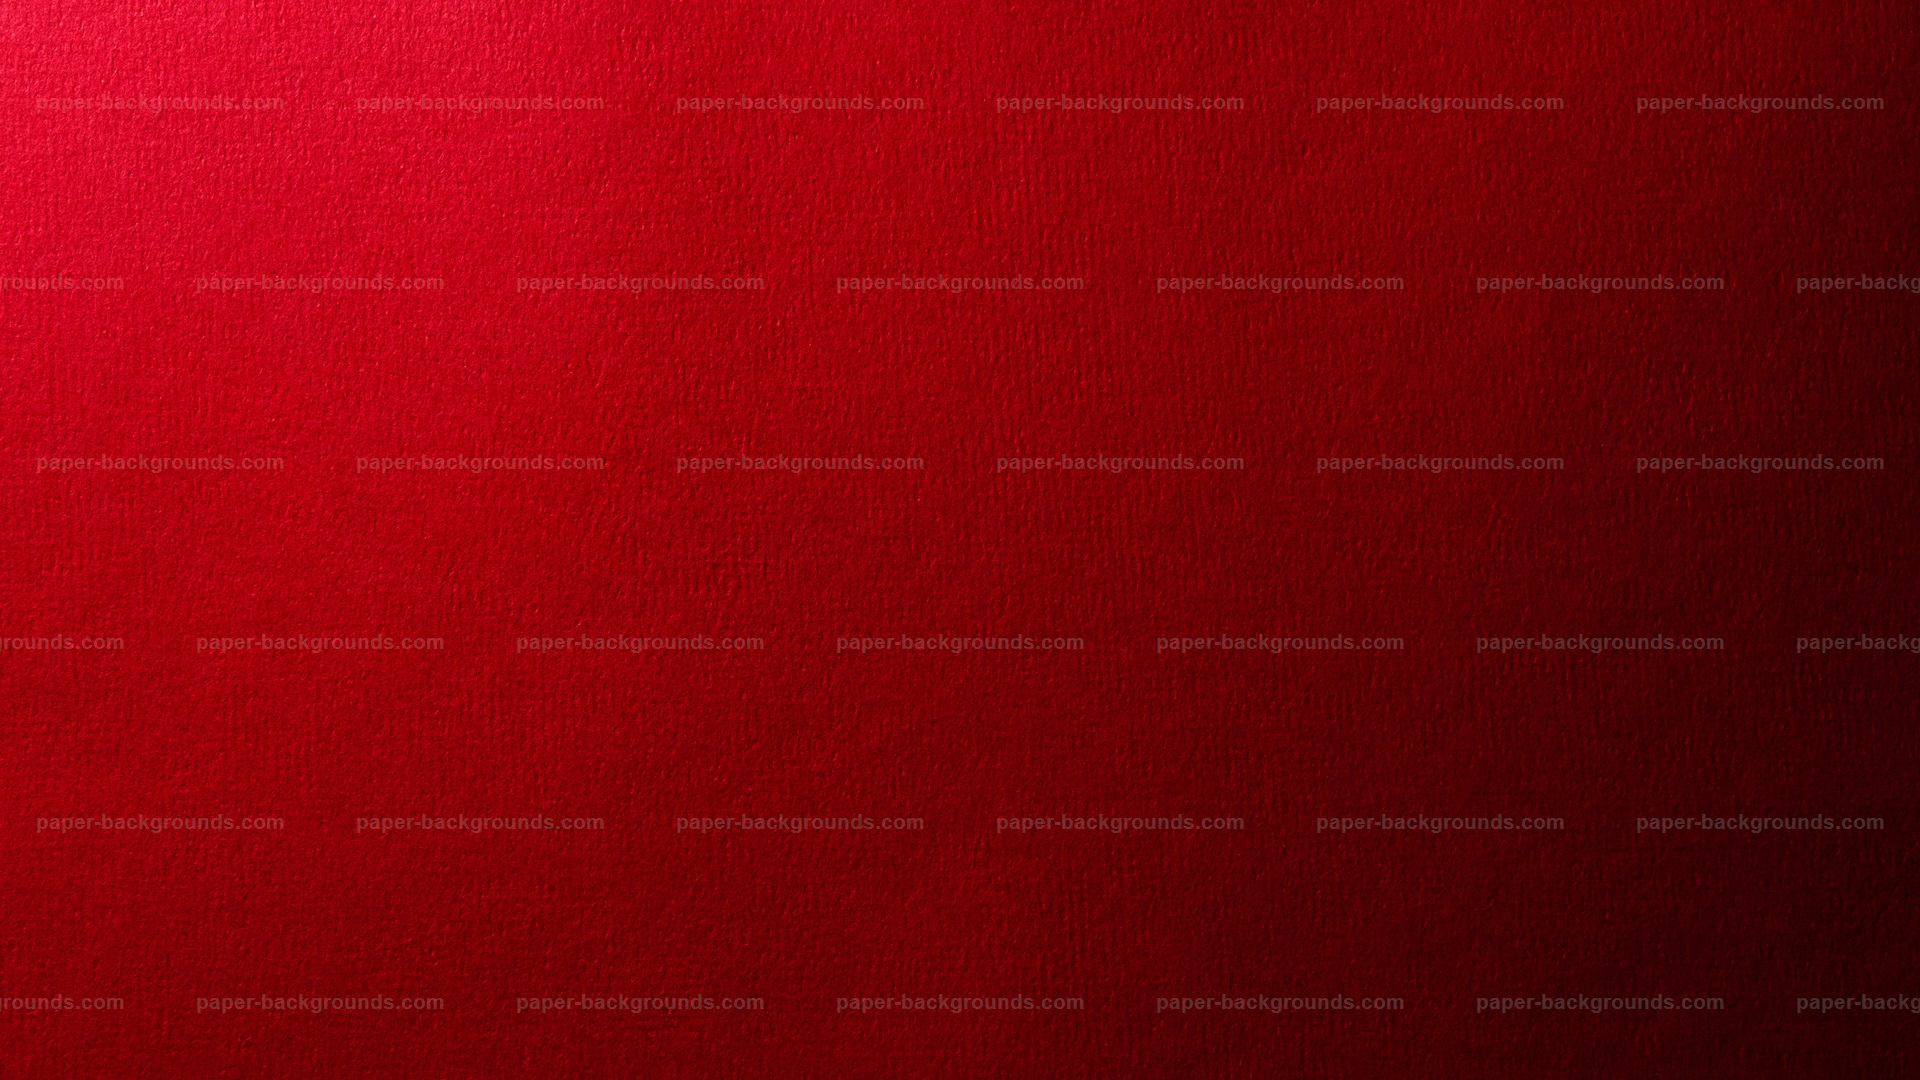 Dark Red Paper Background Texture HD